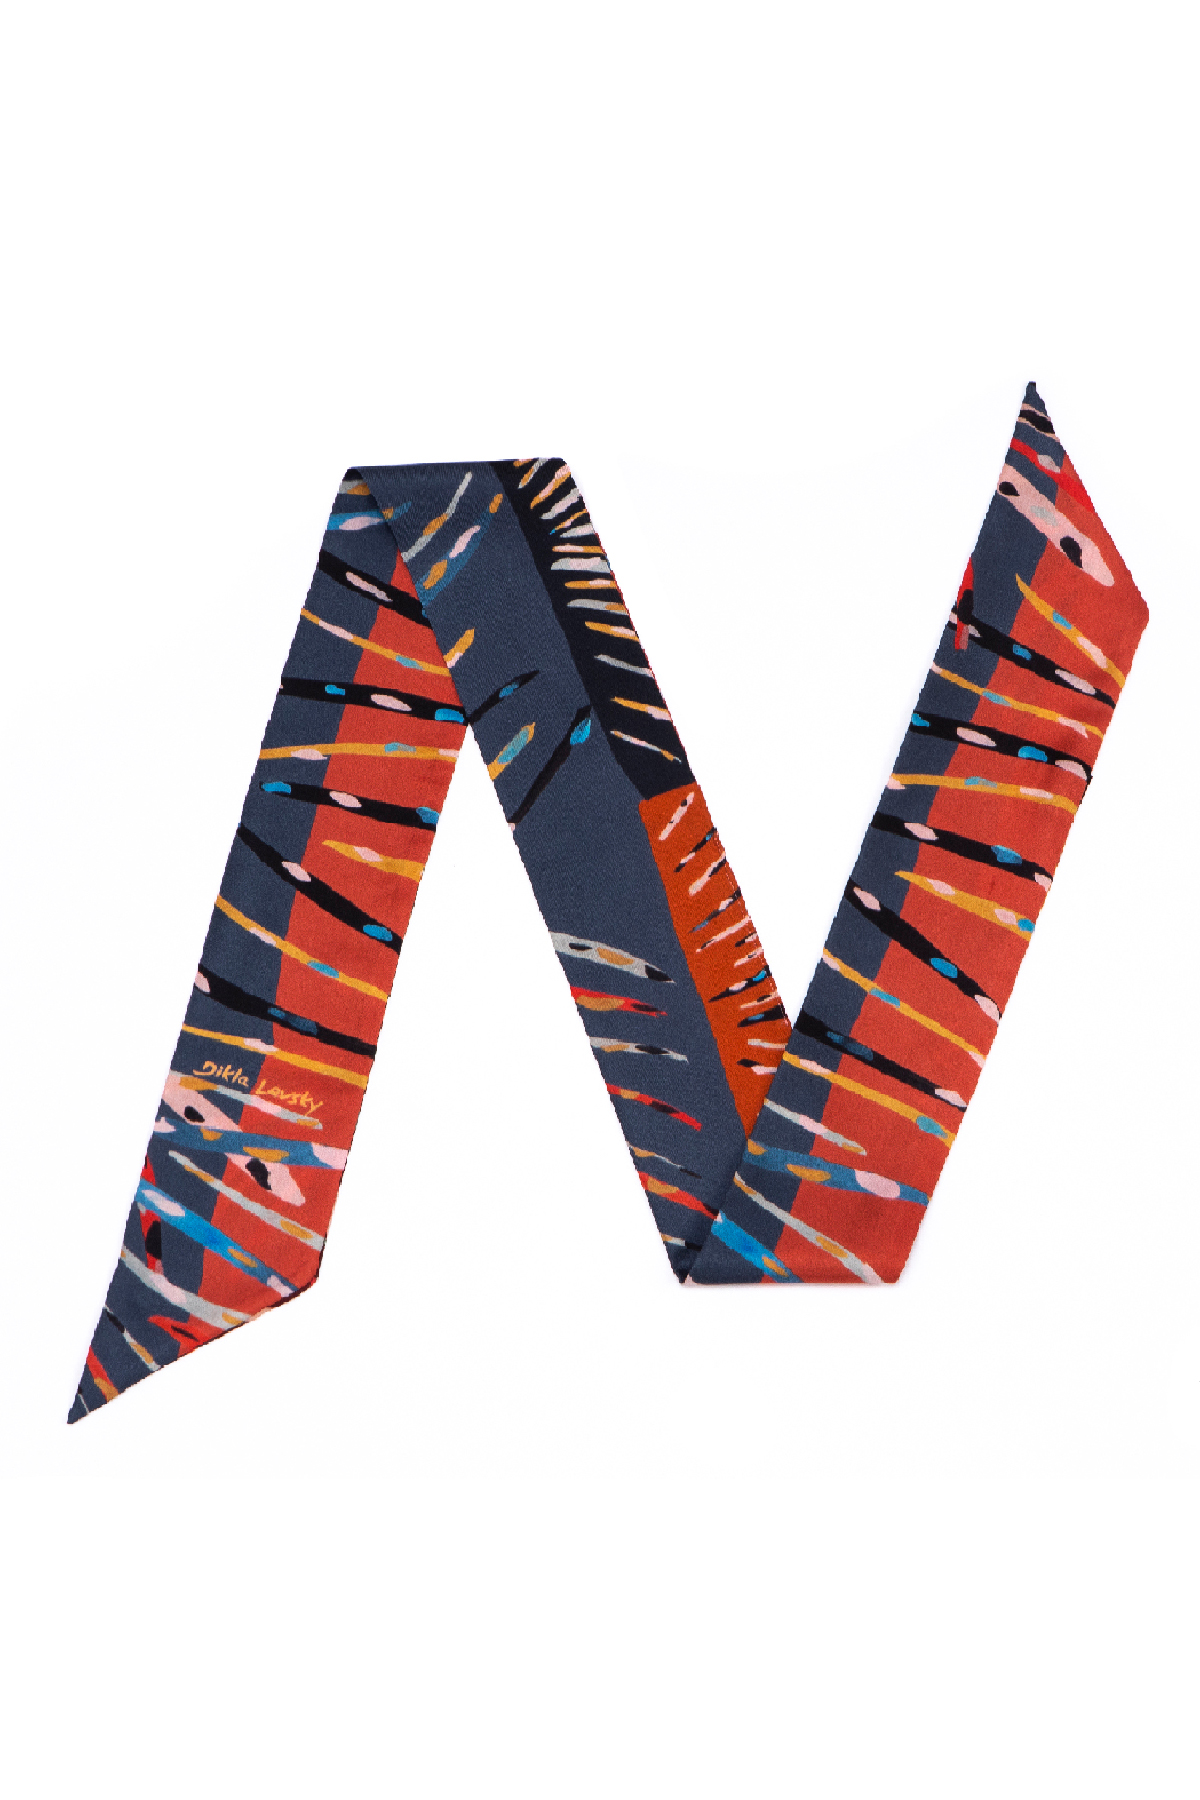 printed silk twill mini scarf, reversible elegant red and blue scarf